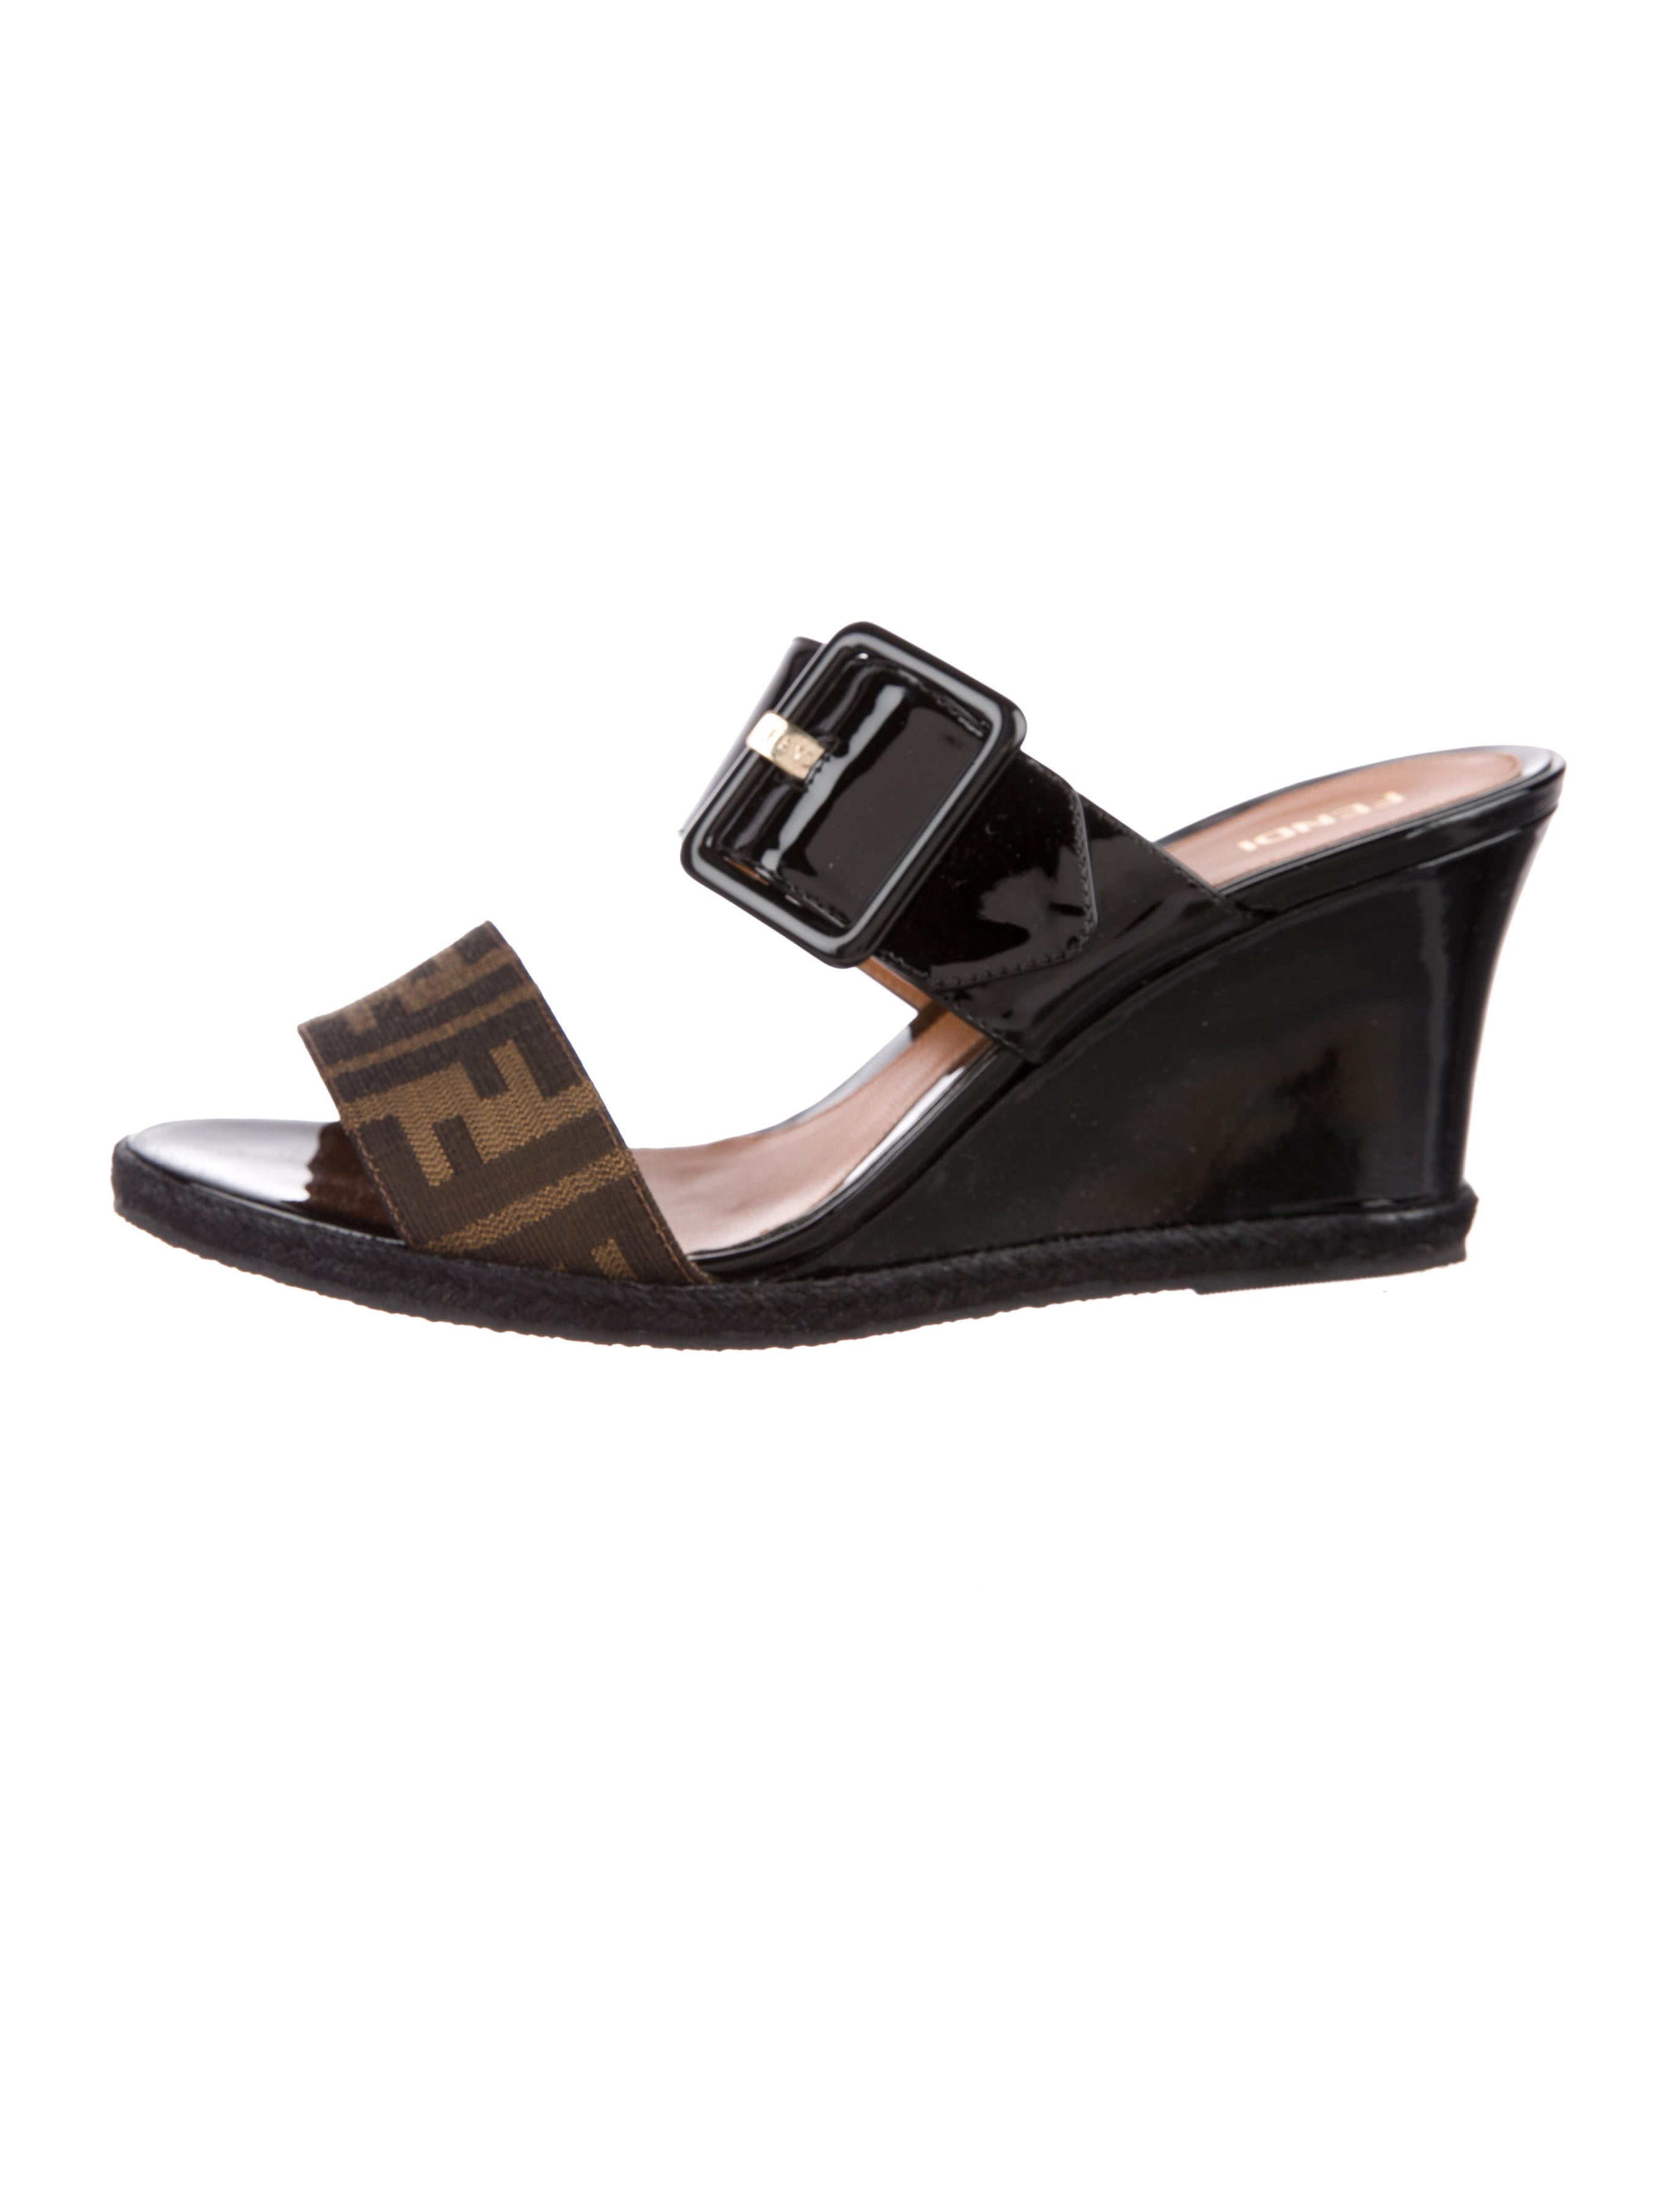 1dbf9ee0c72 Fendi Zucca Patente Leather Sandals - Shoes - FEN75537